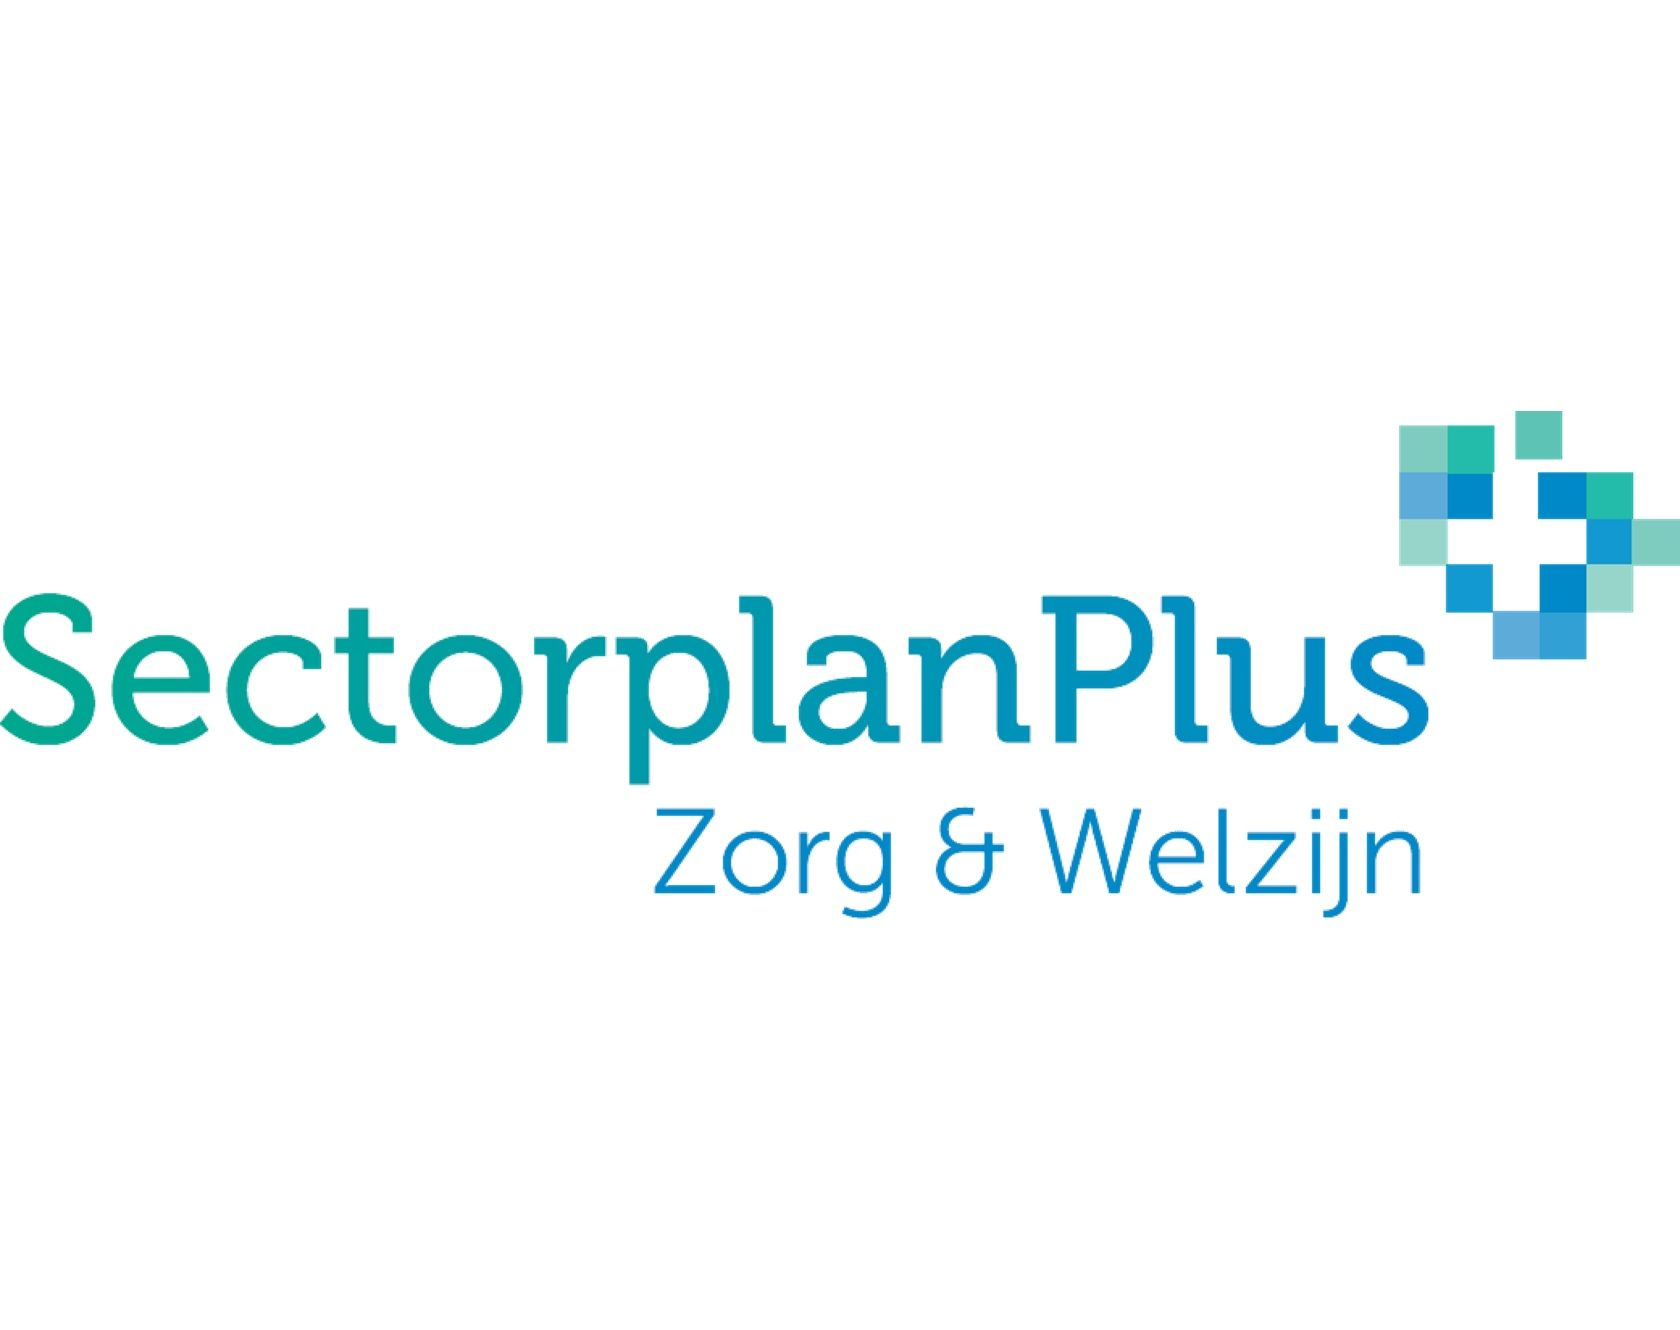 Bijeenkomsten over SectorplanPlus